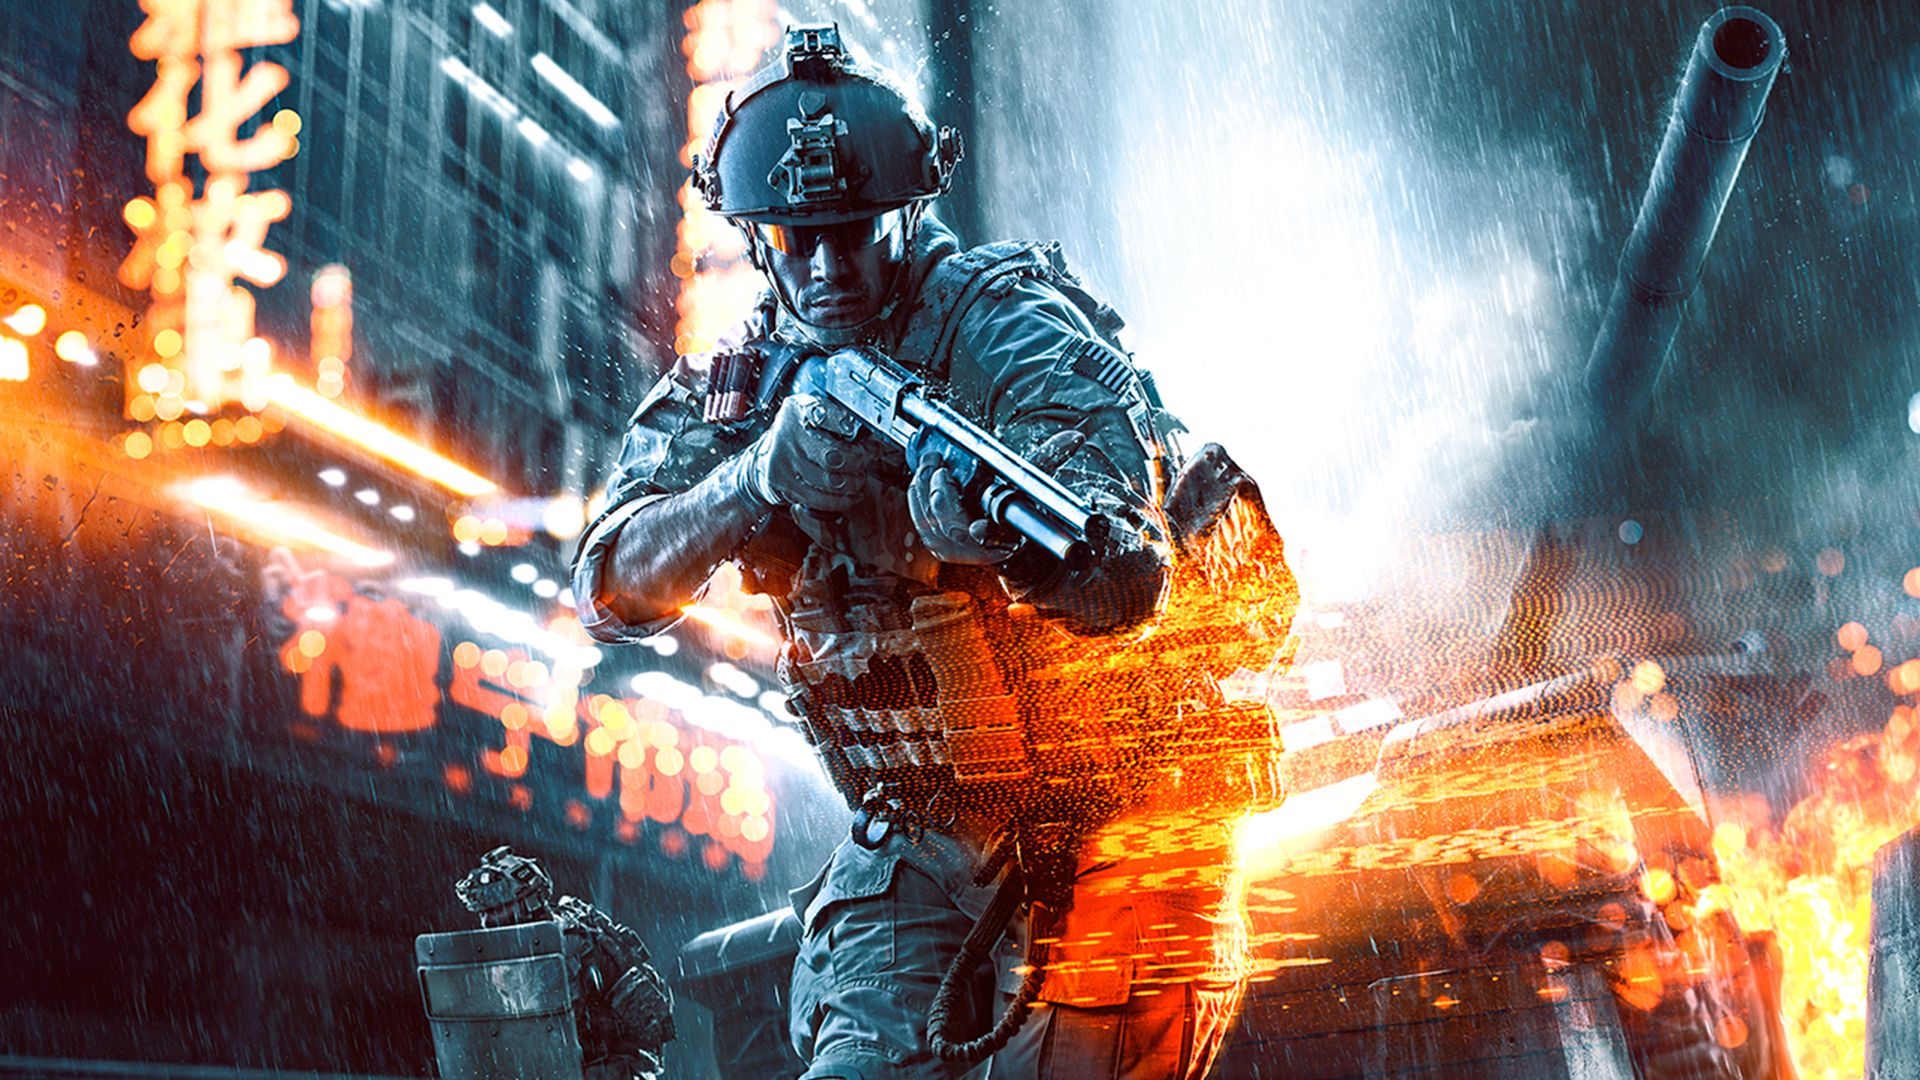 Download Wallpaper 1280x1280 Battlefield 4 Game Ea: Battlefield 4™ Dragon's Teeth For PC